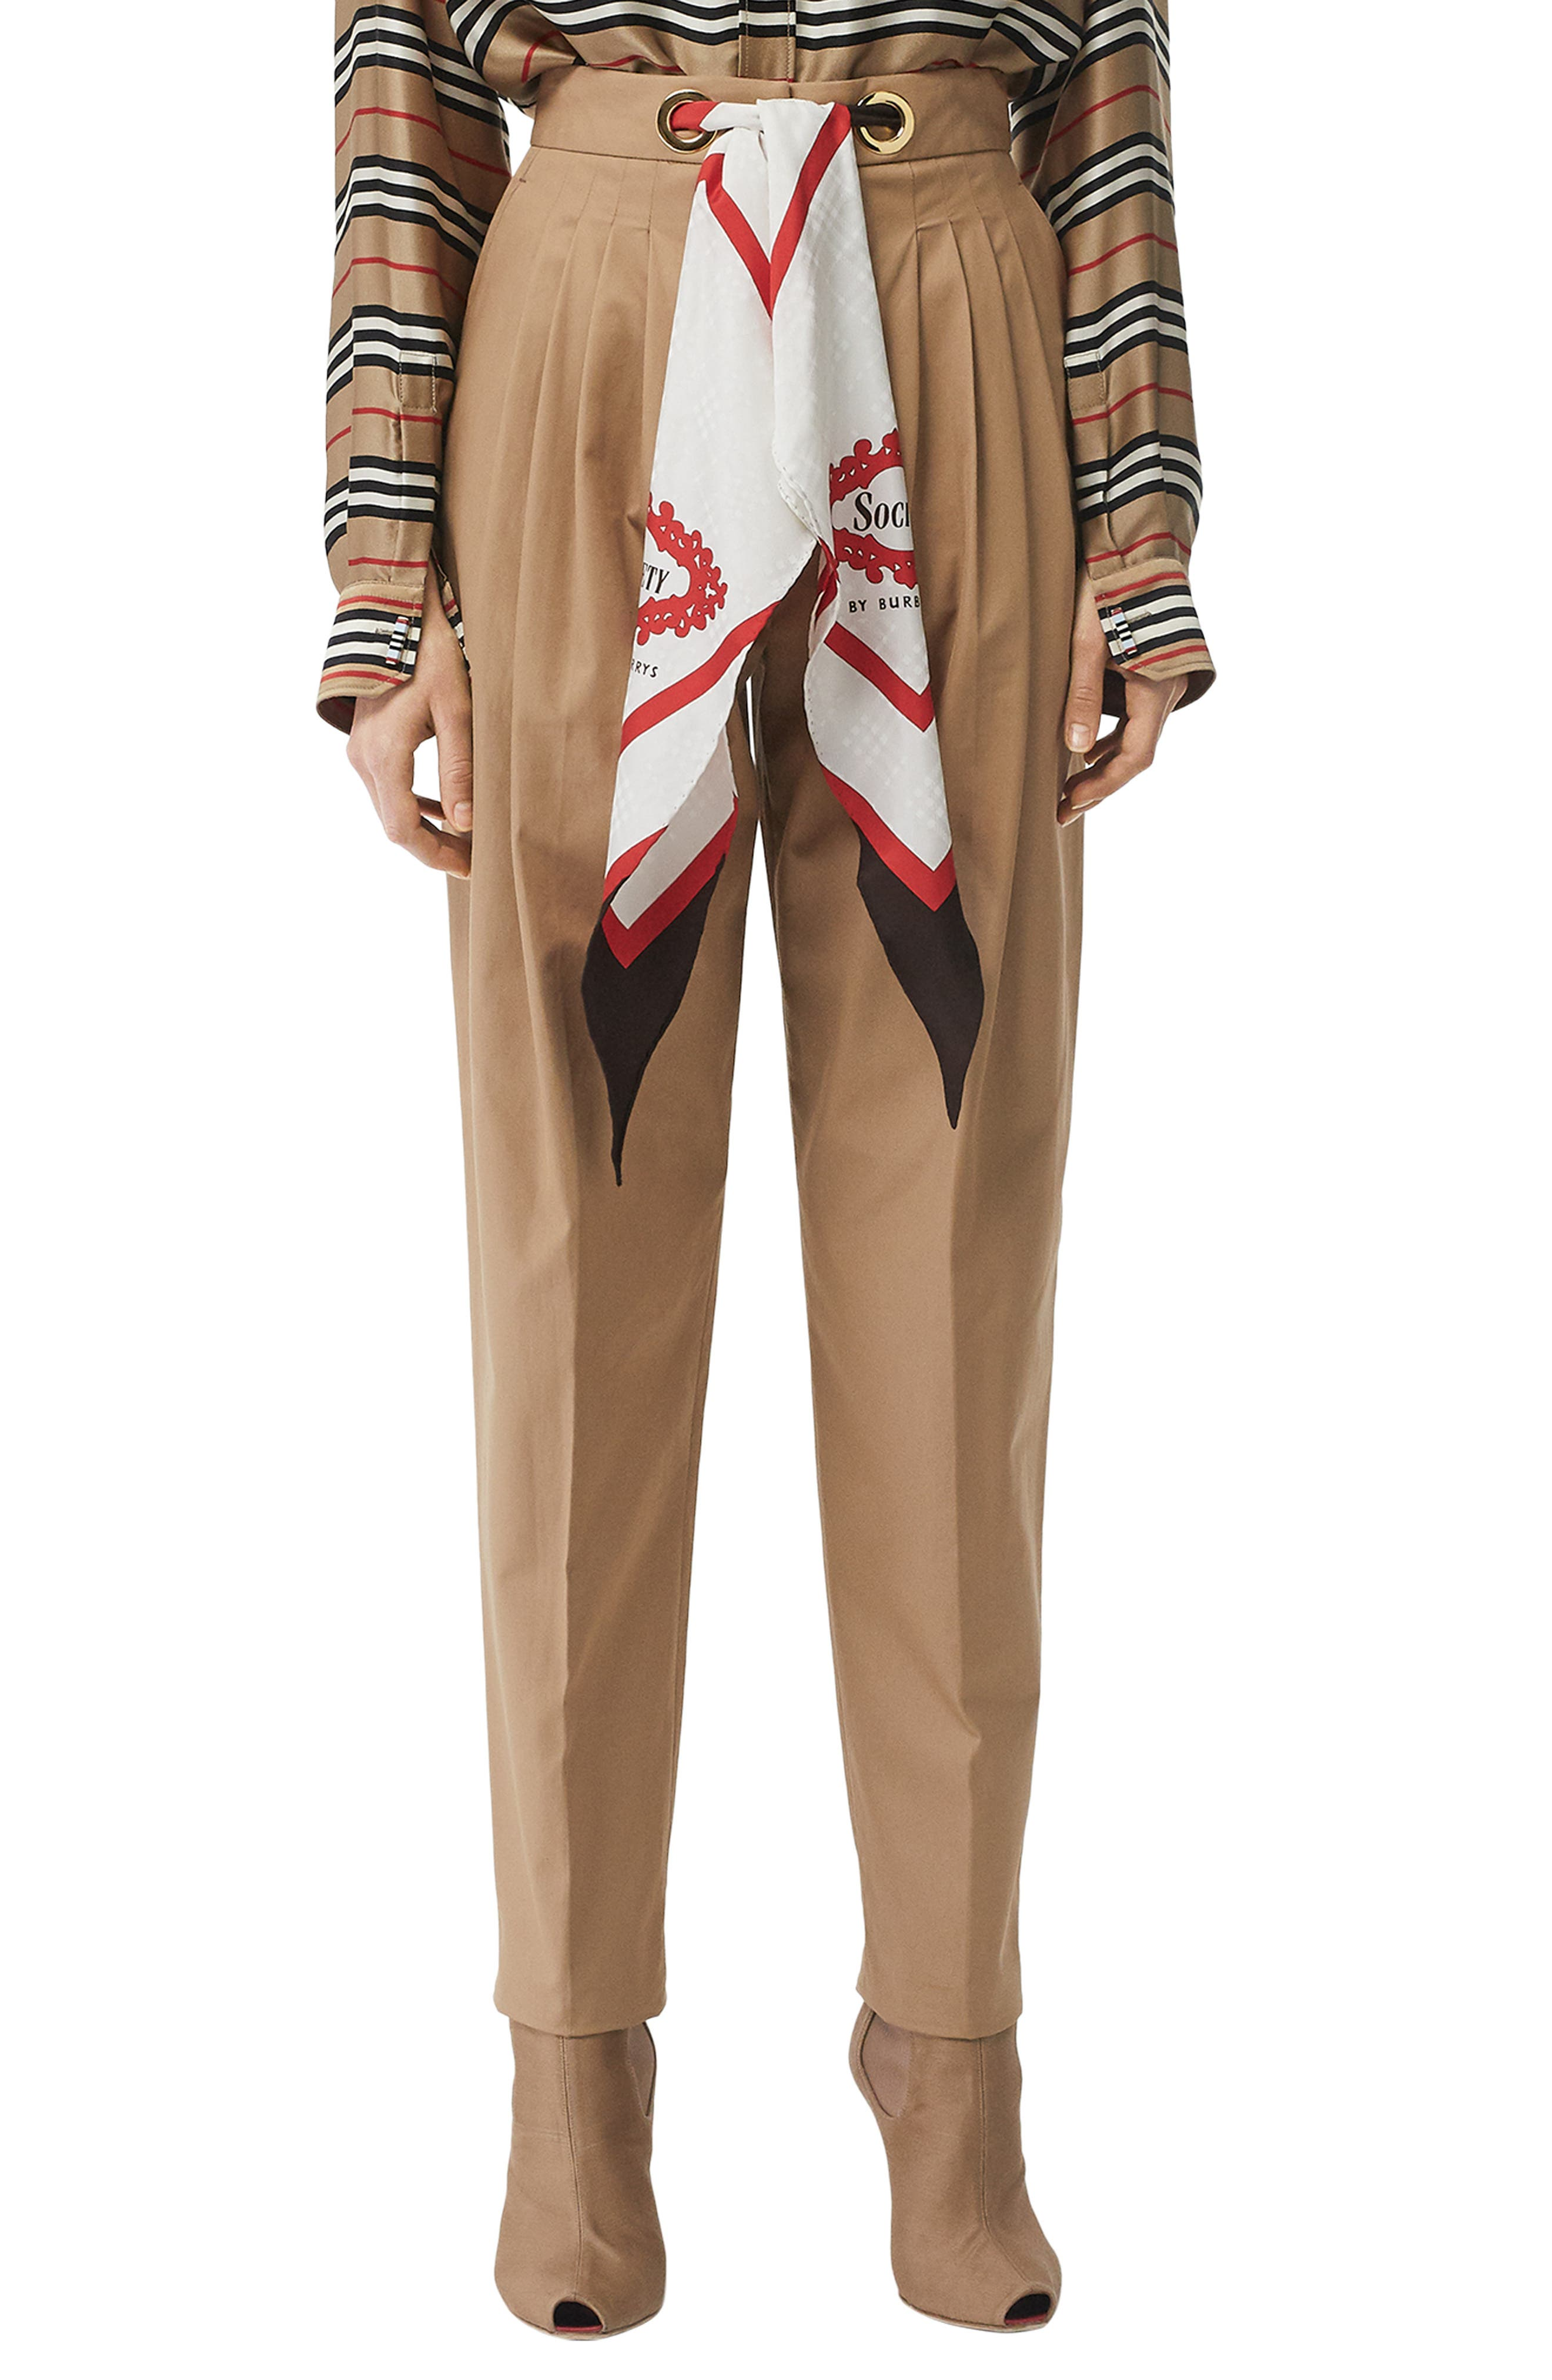 BURBERRY, Scarf Belt Cotton Trousers, Main thumbnail 1, color, DRIFTWOOD